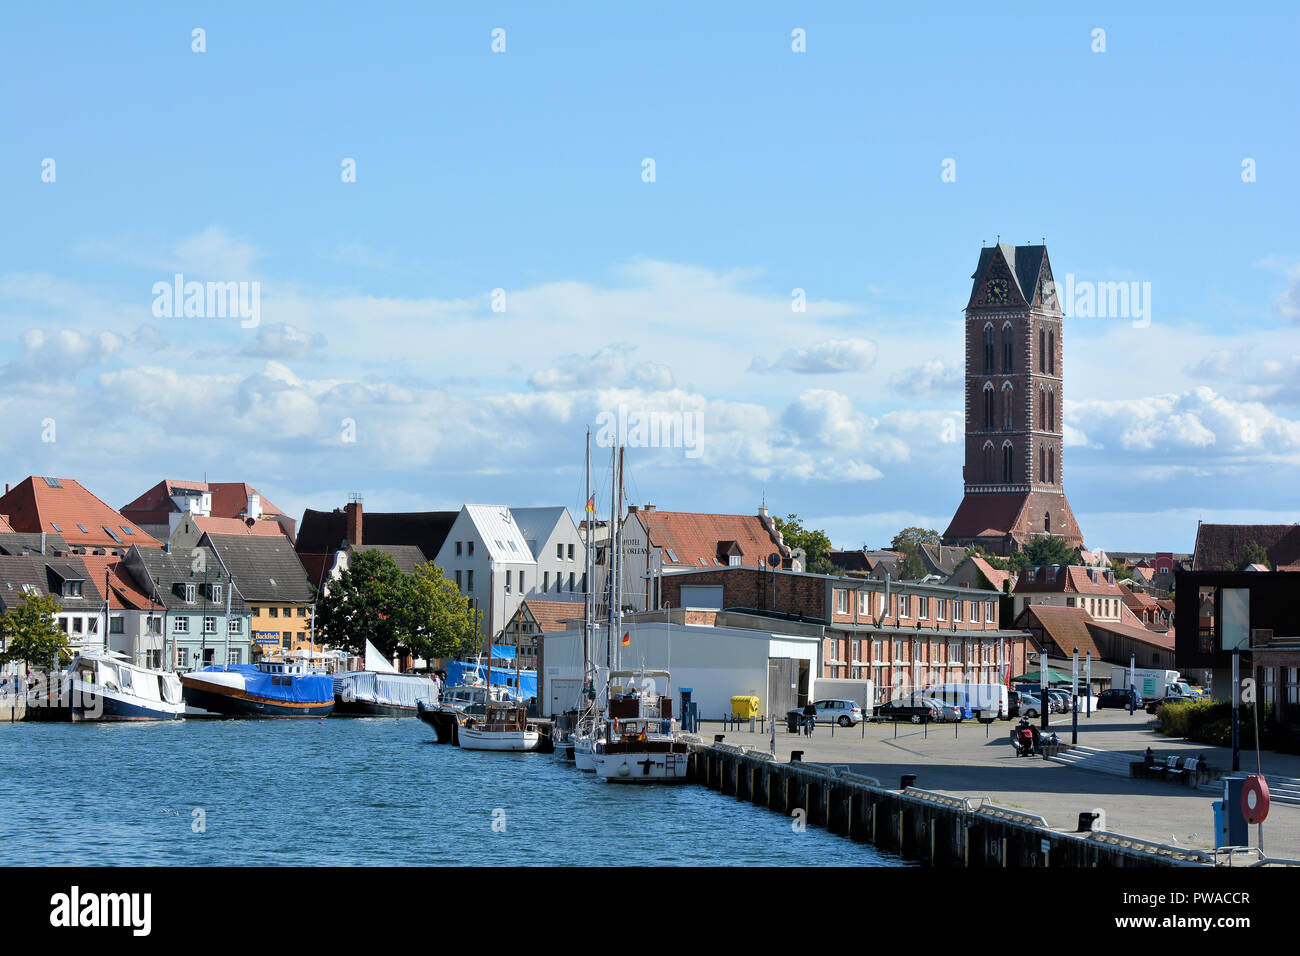 Cityscape of Wismar in Germany - Stock Image